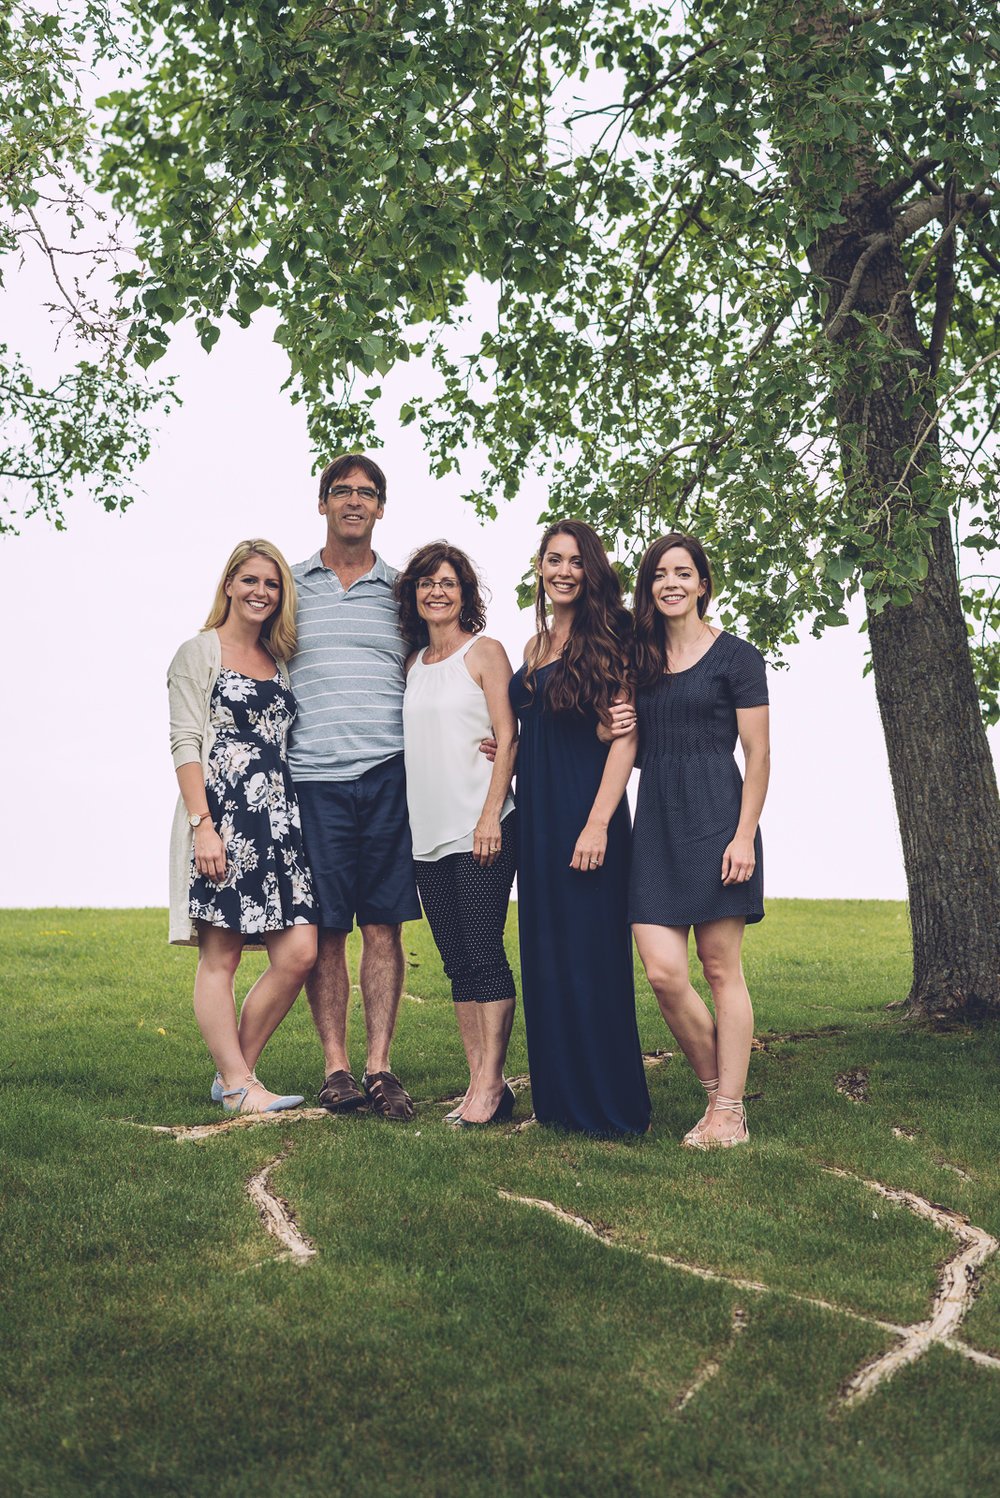 katelyn_family_portraits_blog14.jpg